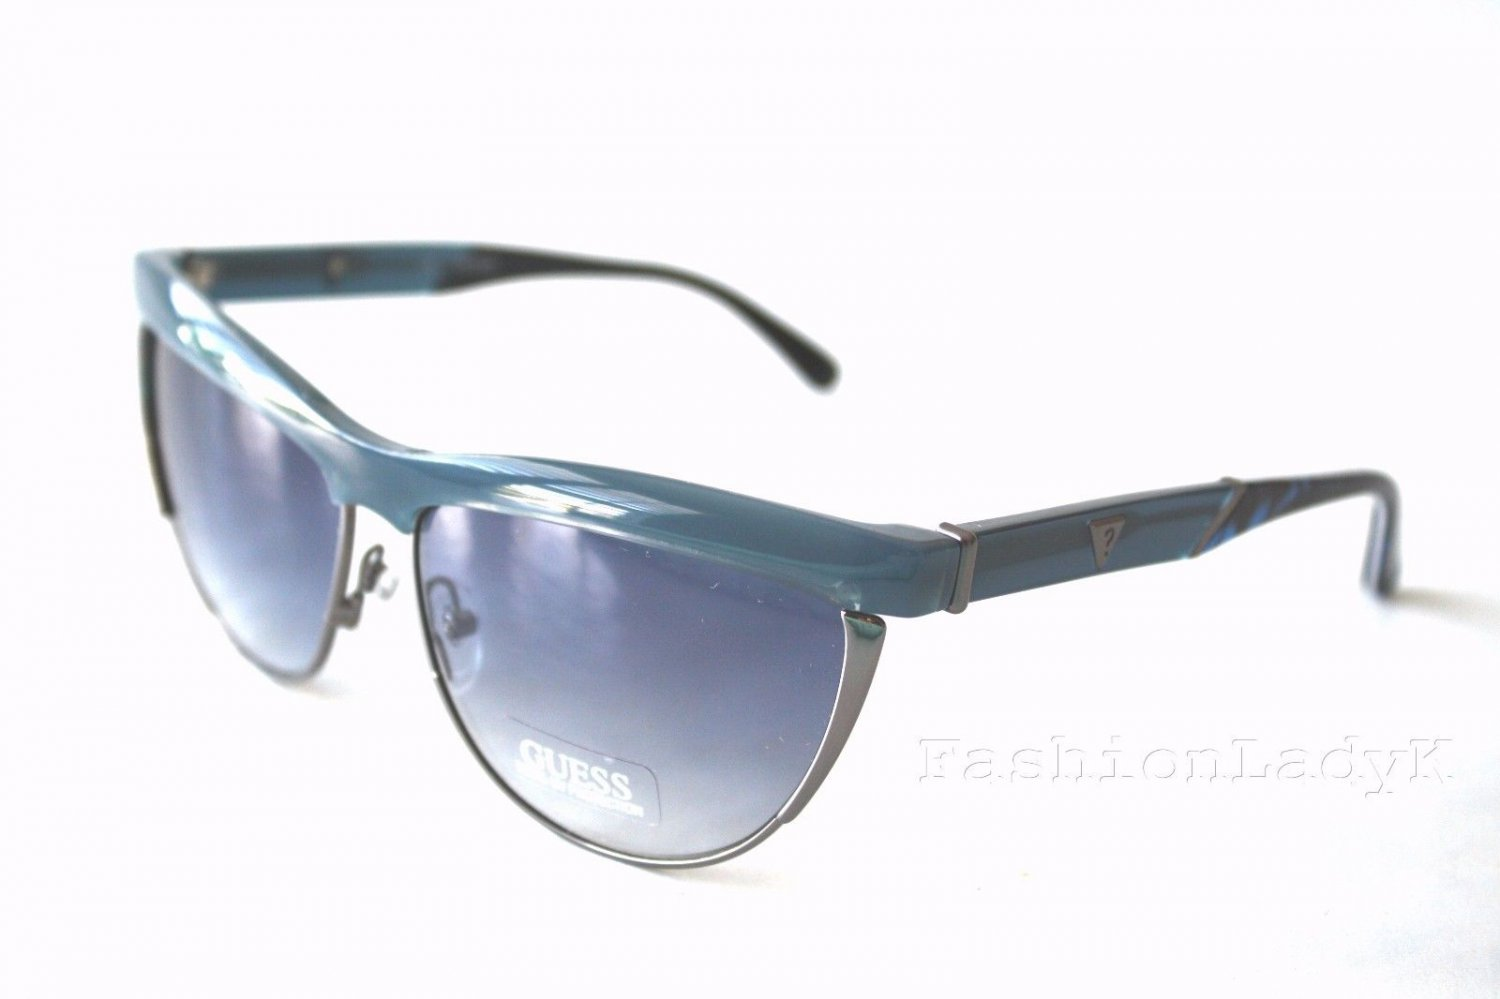 GUESS Women Blue Sunglasses GU7200 BL-72 New w/ Case